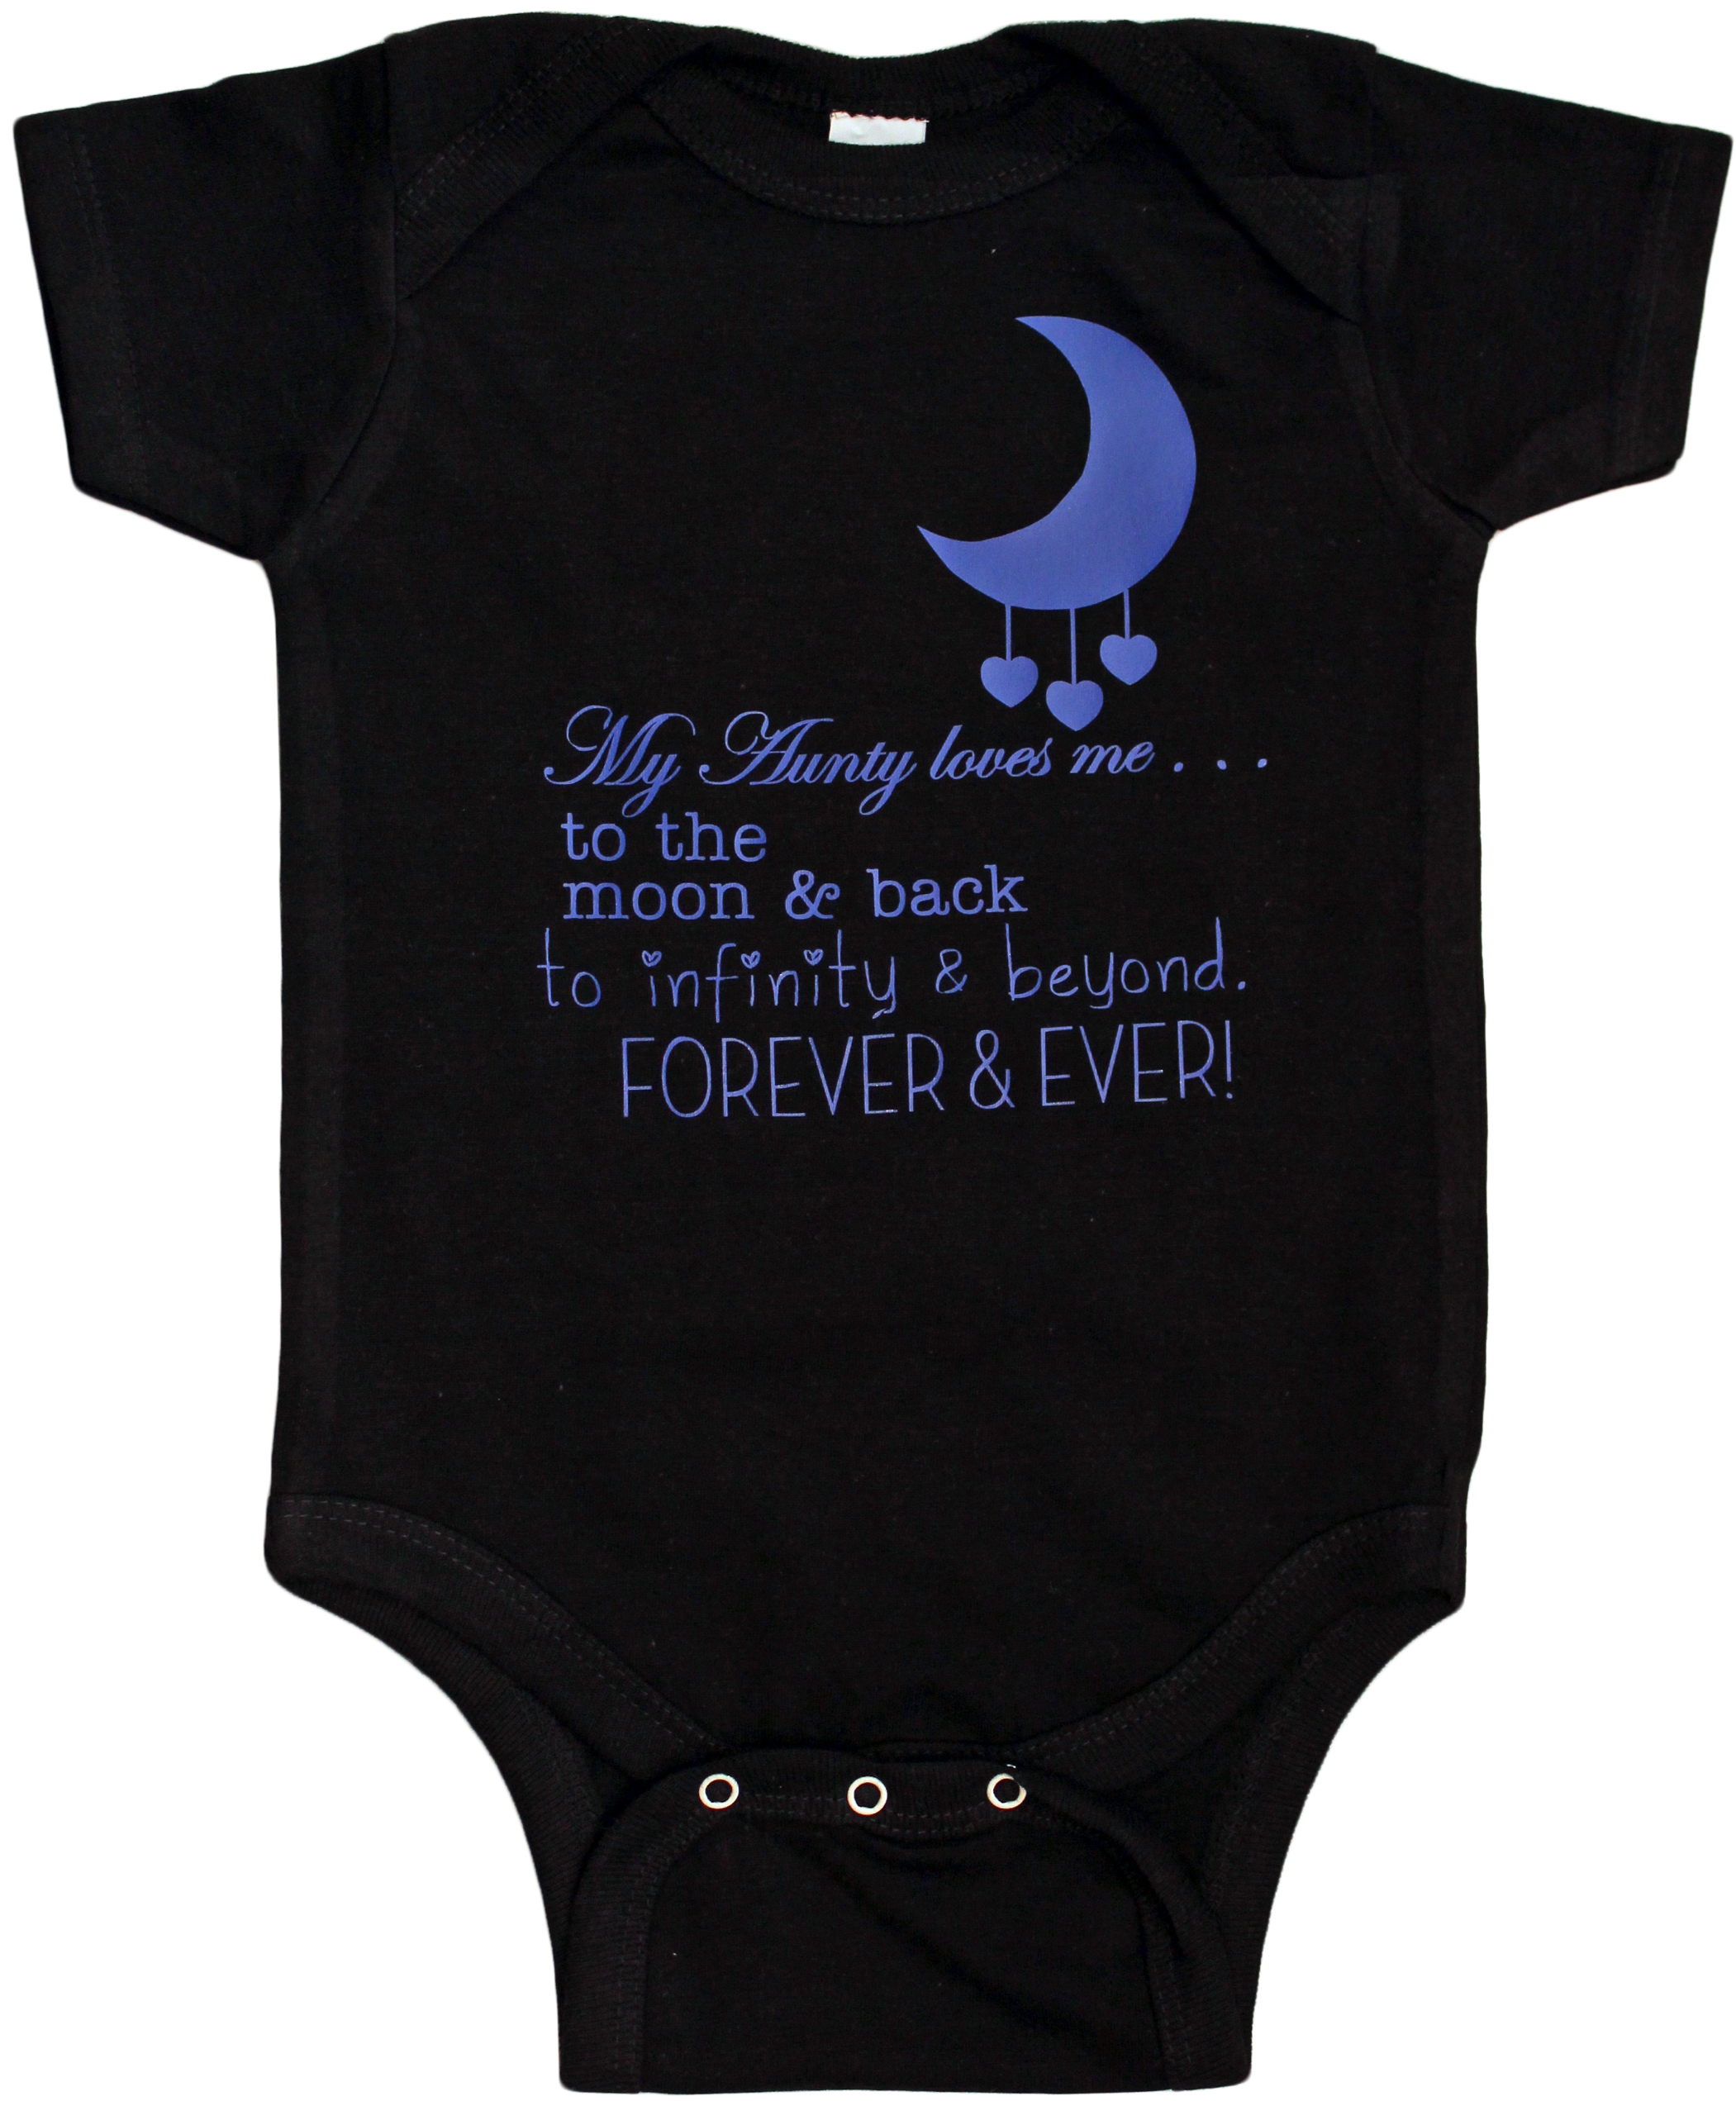 Aunty Loves You To The Moon And Back Forever And Ever Cute Baby Clothes Aunt Baby Clothing Baby Clothing Baby Gift Funny Baby Tee Baby Clothing